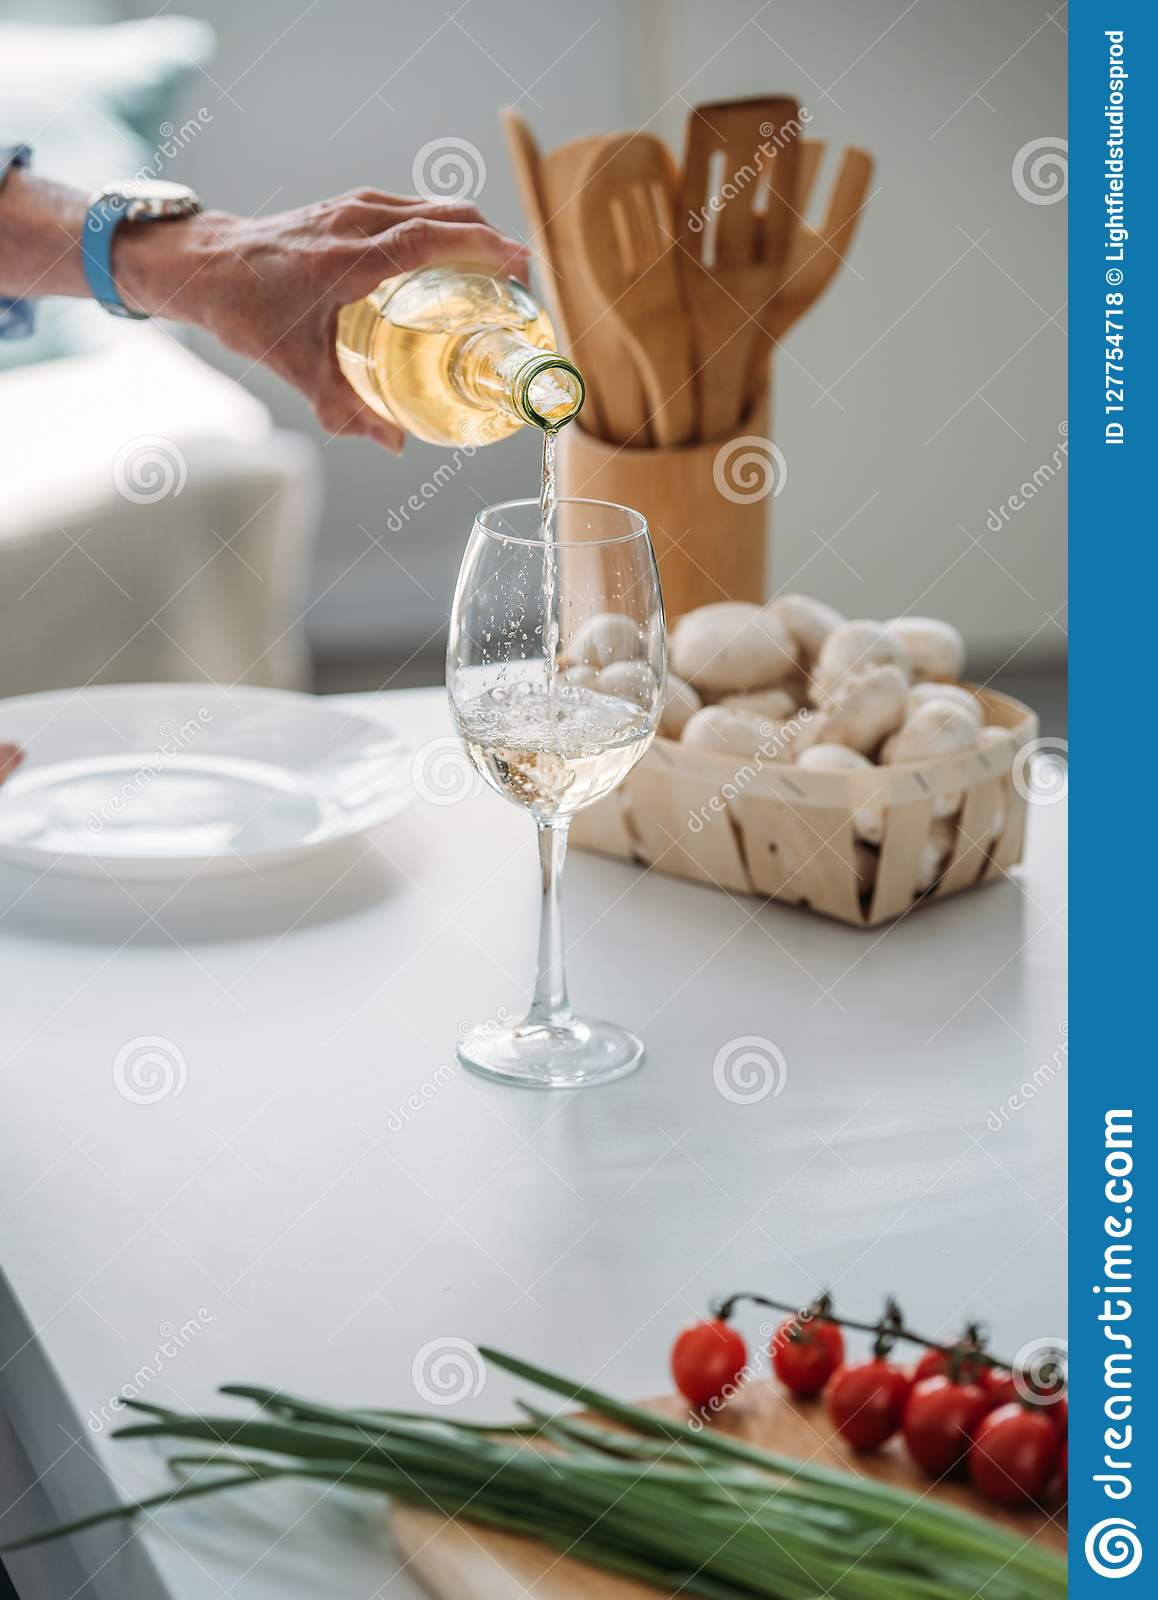 cropped shot of senior woman pouring wine into glass at counter with fresh vegetables in kitchen